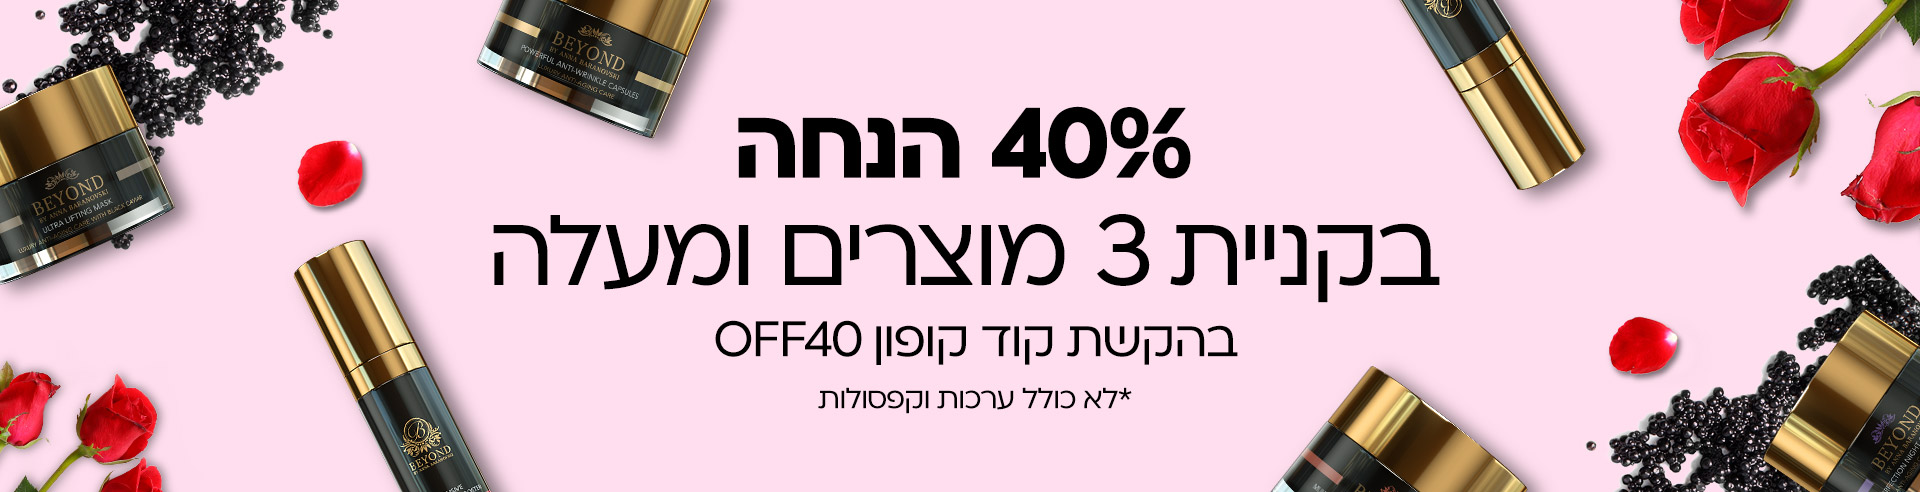 Beyond cosmetic products - sale 40% on shop items Use coupon OFF40